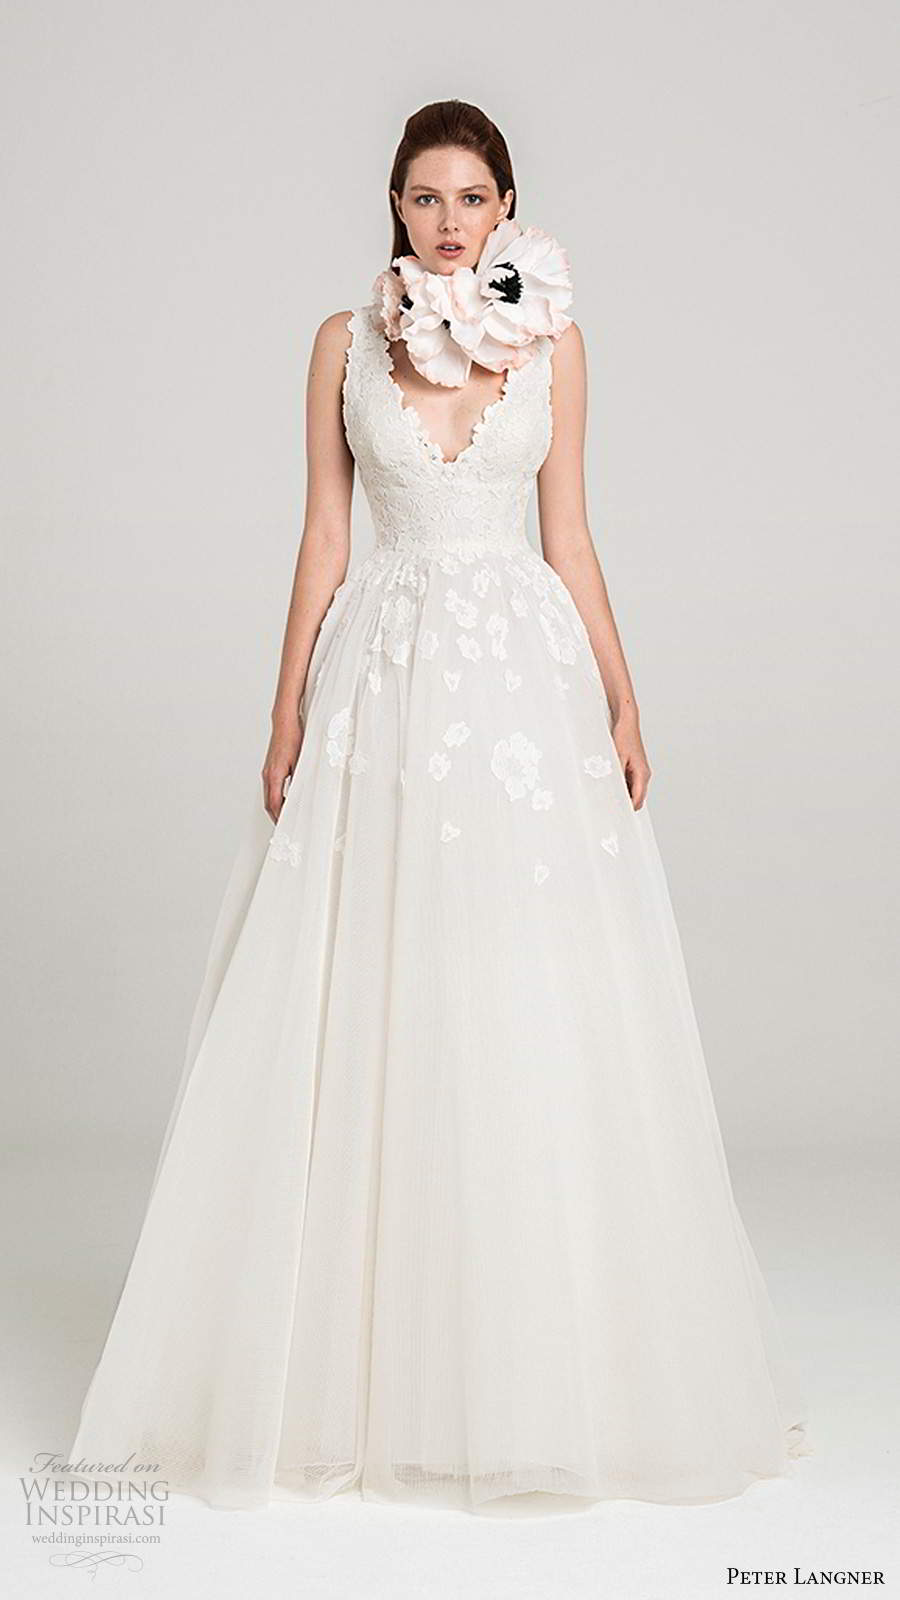 peter langner fall 2020 bridal sleeveless thick straps v encekline embellished bodice a line ball gown lace wedding dress chapel train (7) mv